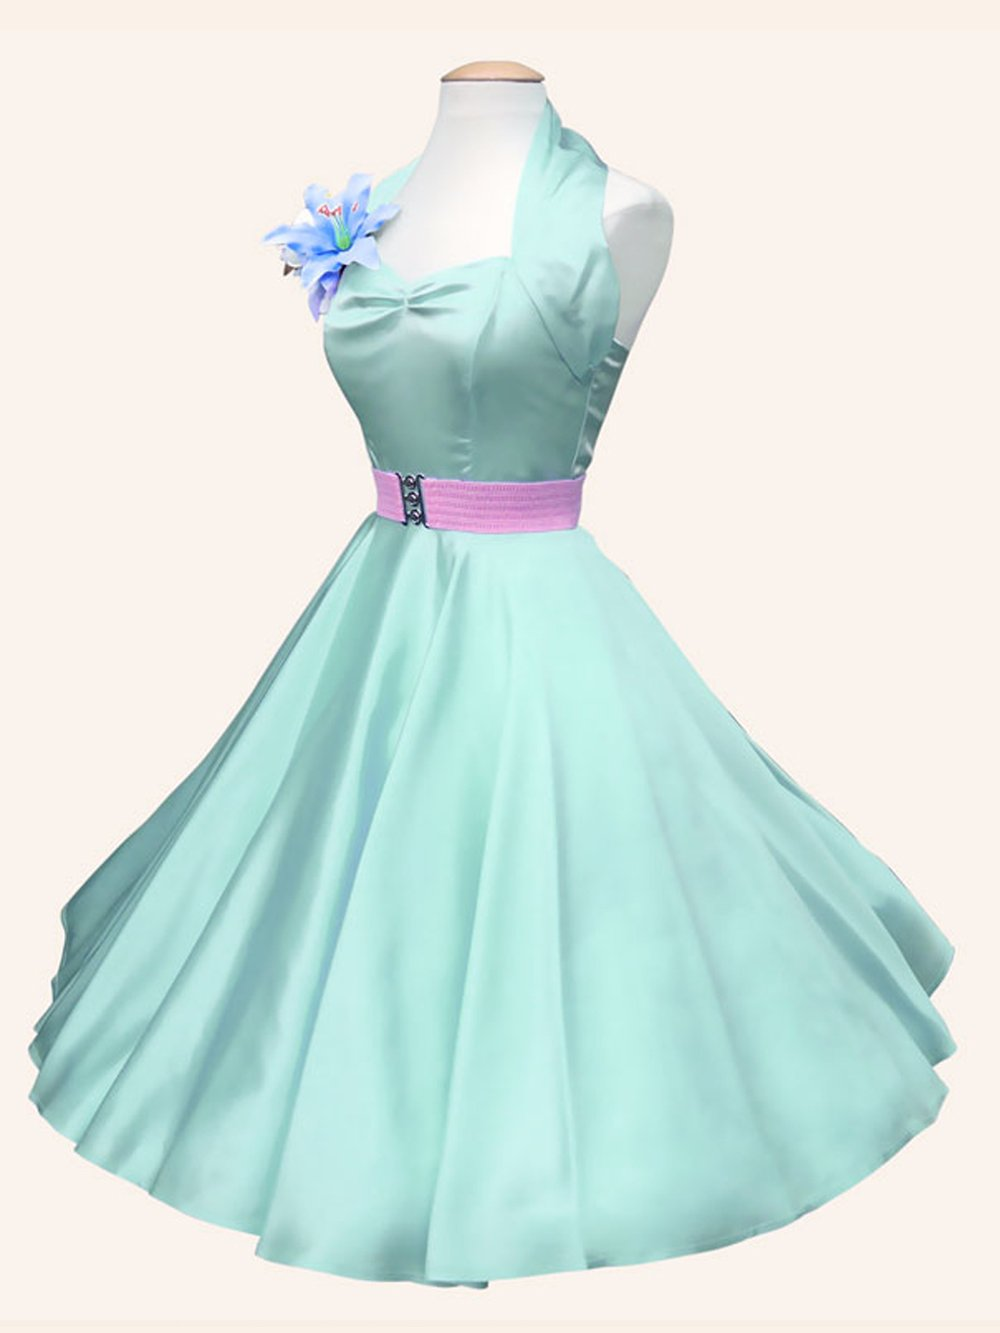 1950s dresses for sale 1950s halterneck images frompo for 1950s style wedding dresses for sale